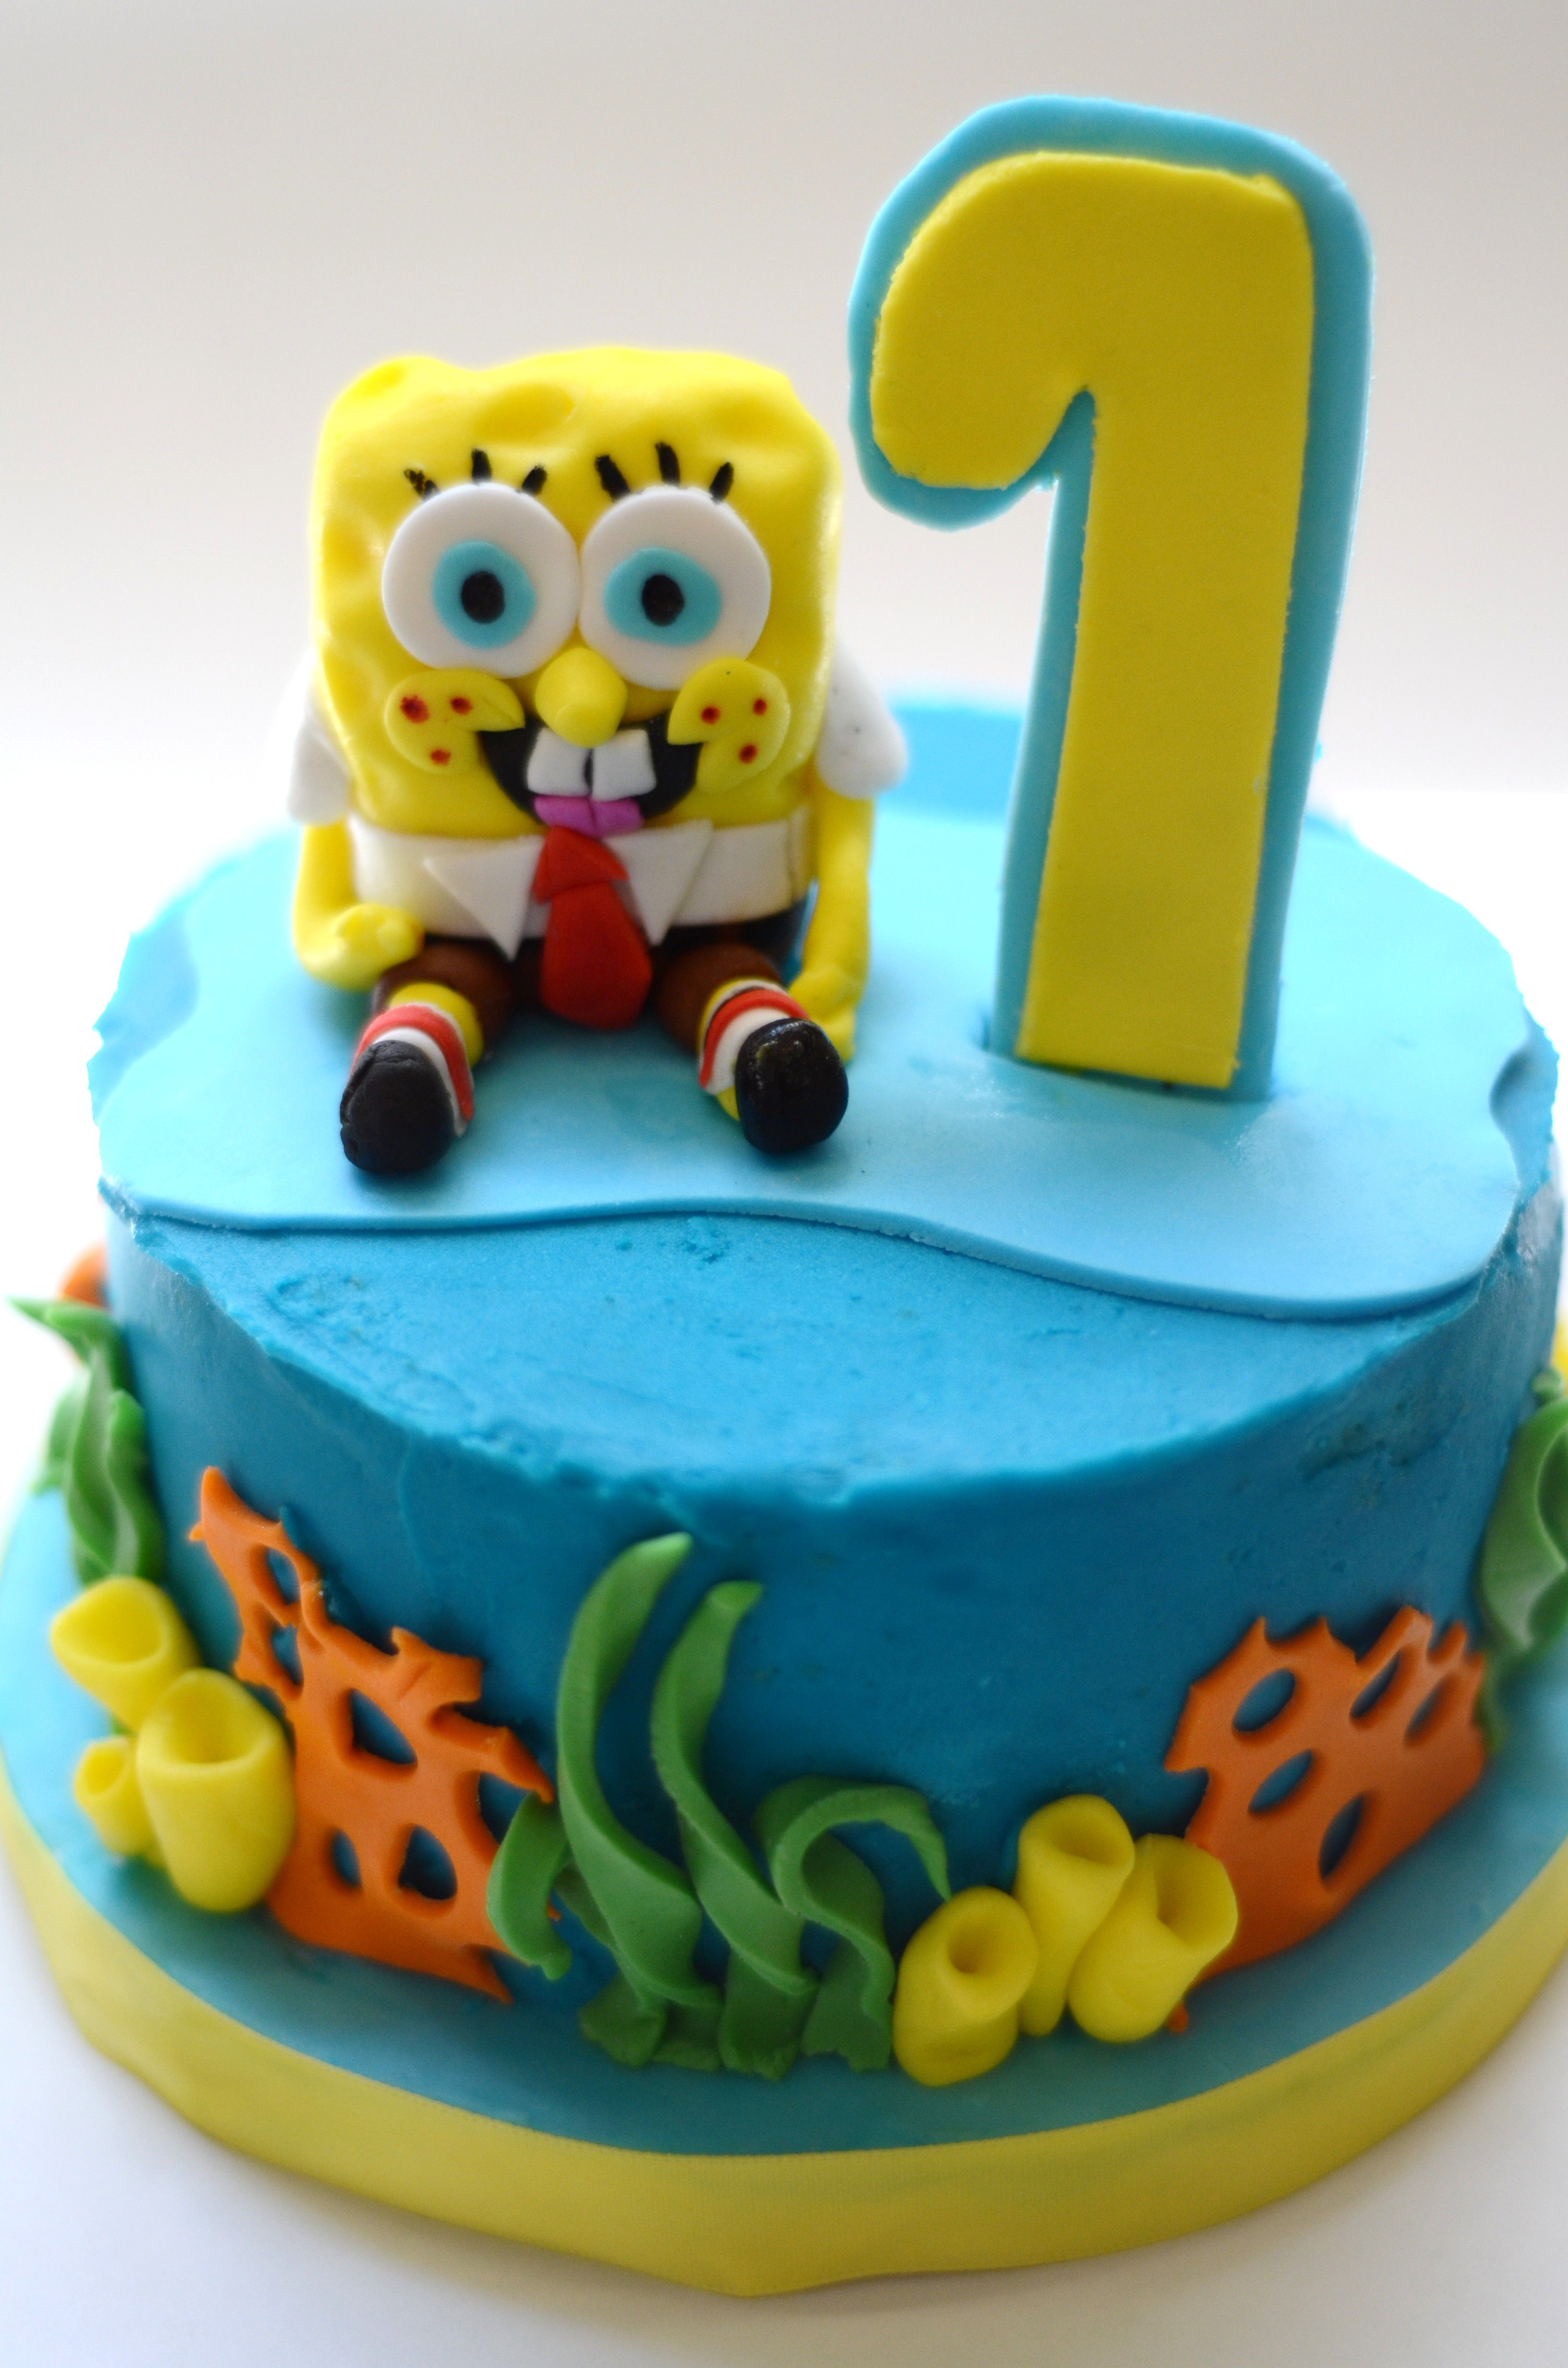 Astonishing 1St Birthday Spongebob Mini Cake Only With A 3 Laying On The Funny Birthday Cards Online Alyptdamsfinfo